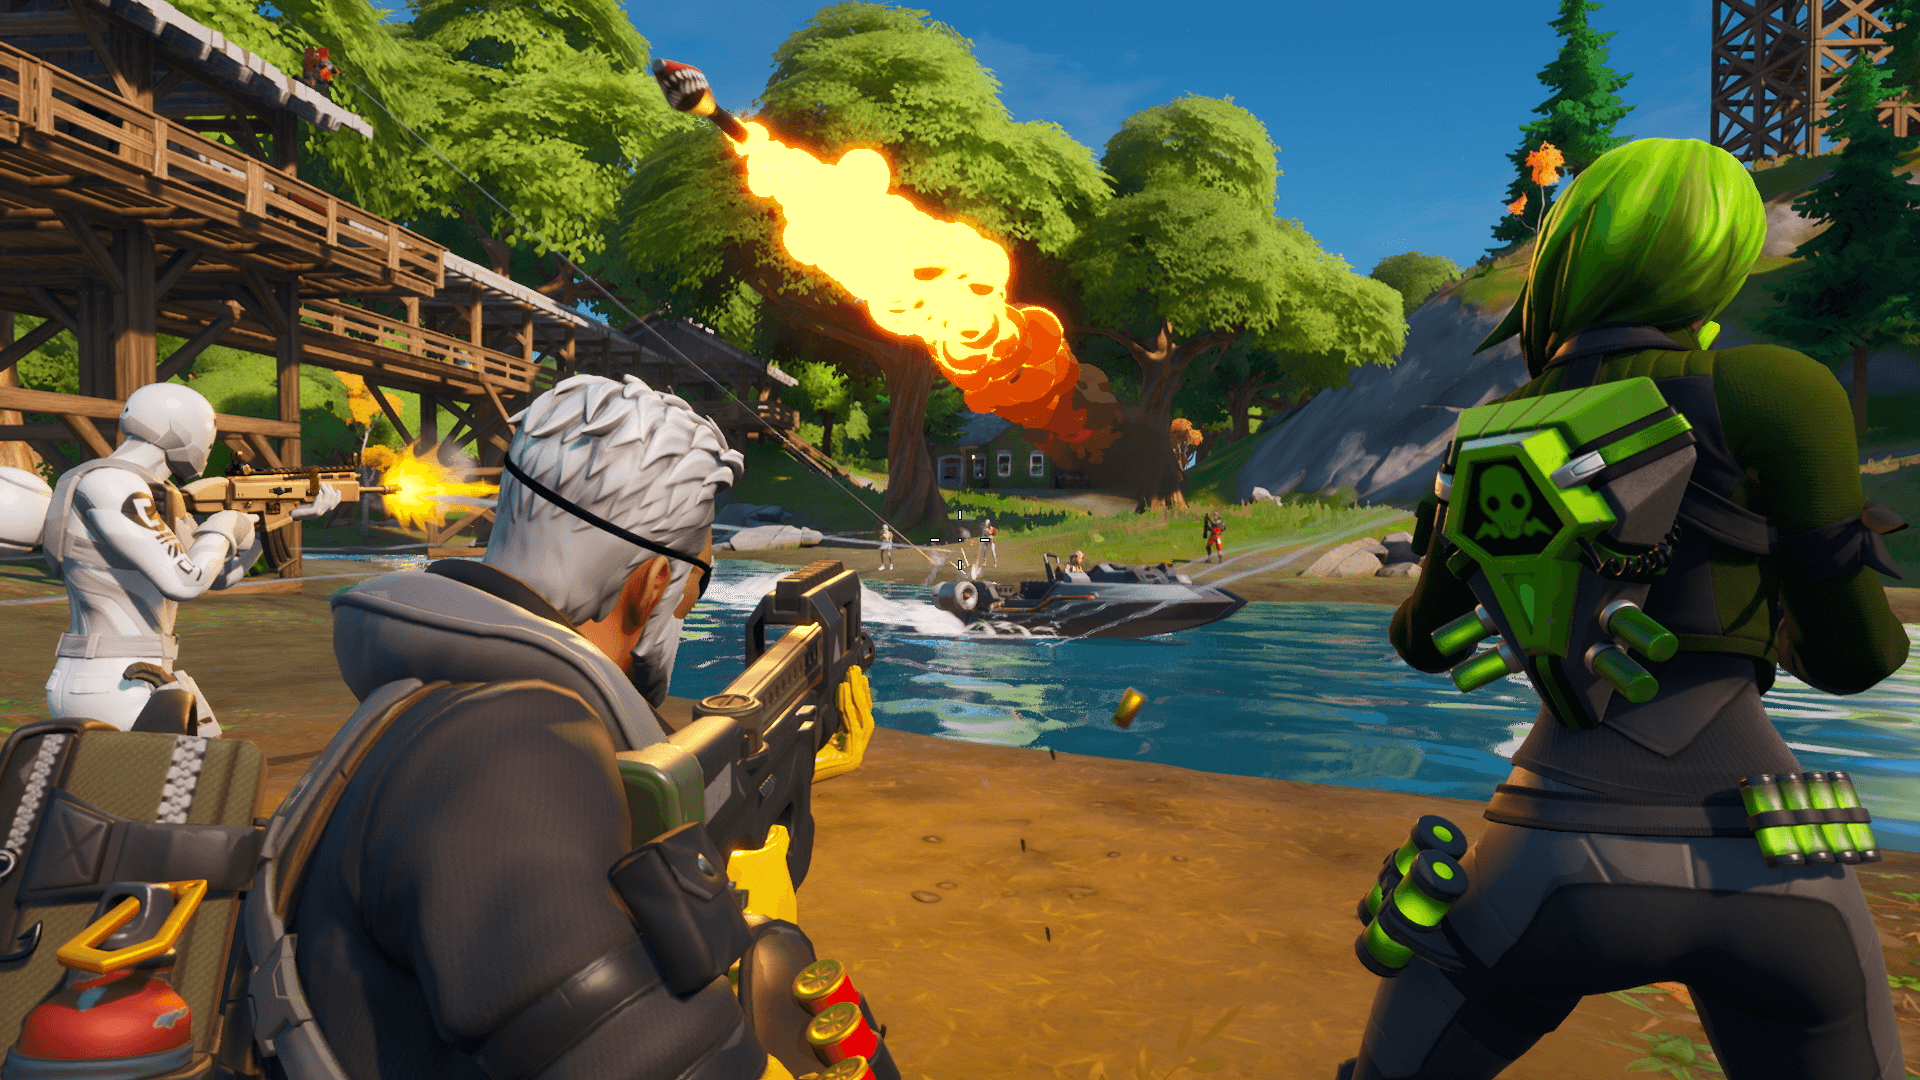 A Fortnite squad fires at enemies on a boat in a lakeside showdown.